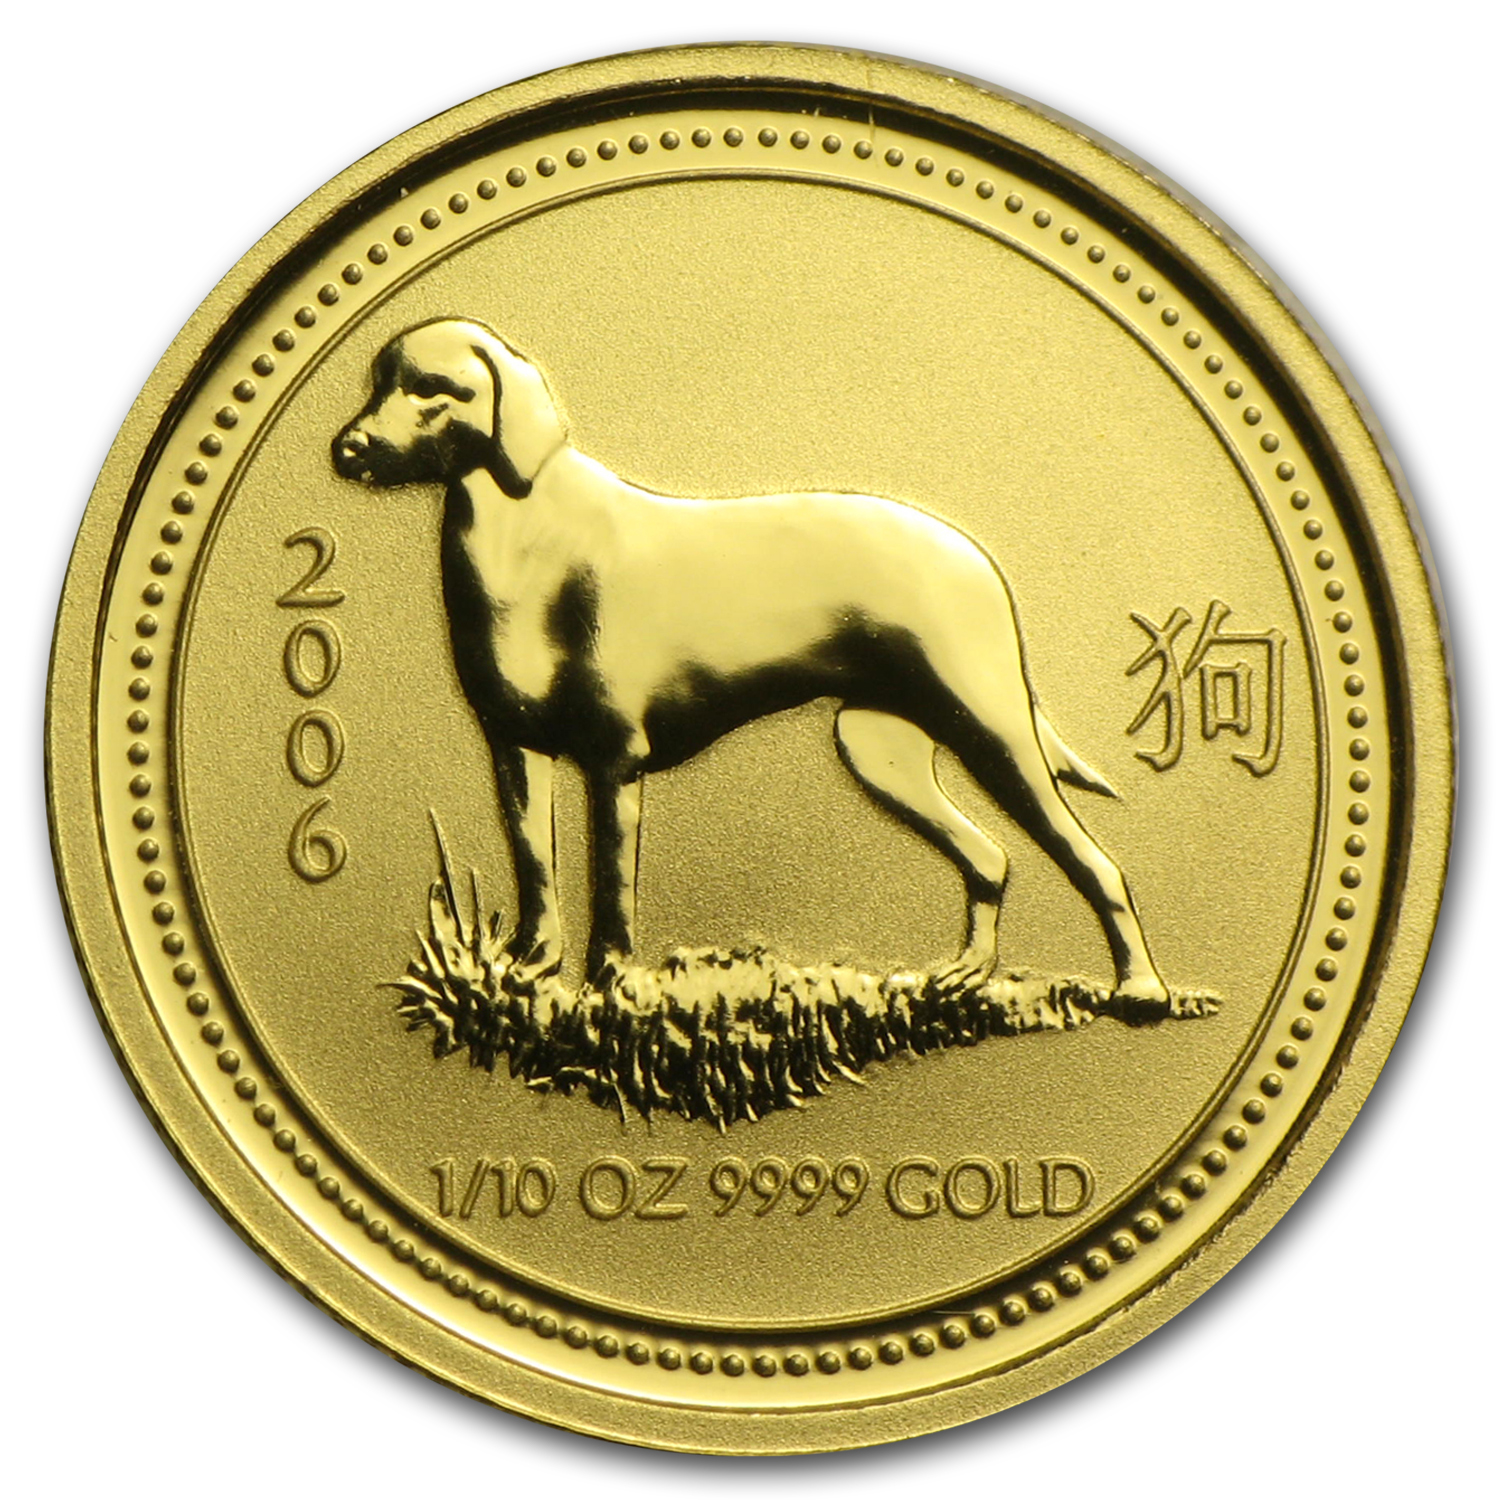 2006 Australia 1/10 oz Gold Lunar Dog BU (Series I)